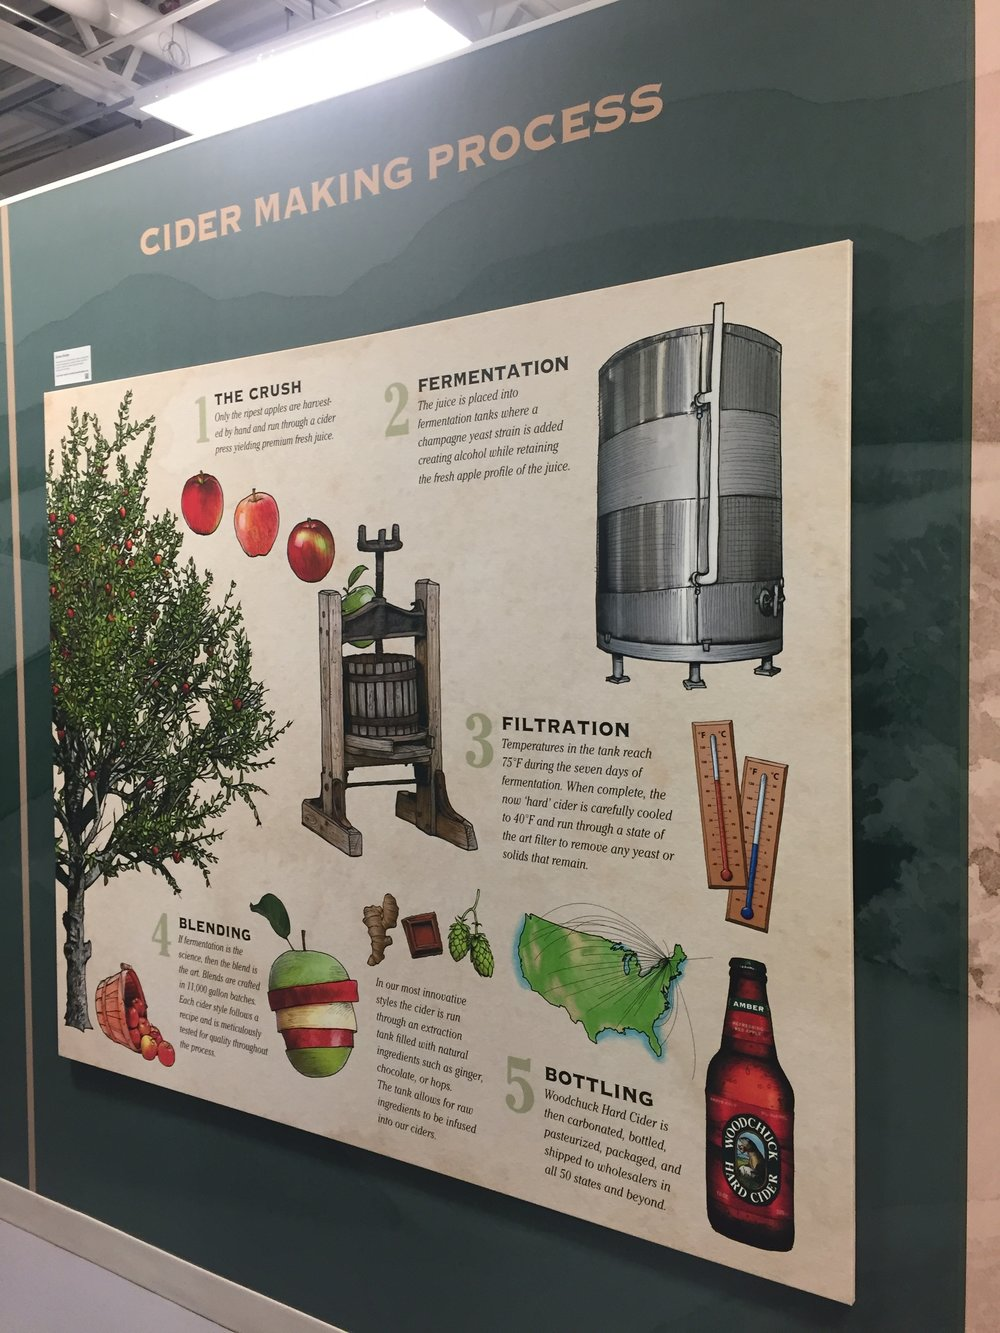 woodchuckciderhowitsmade